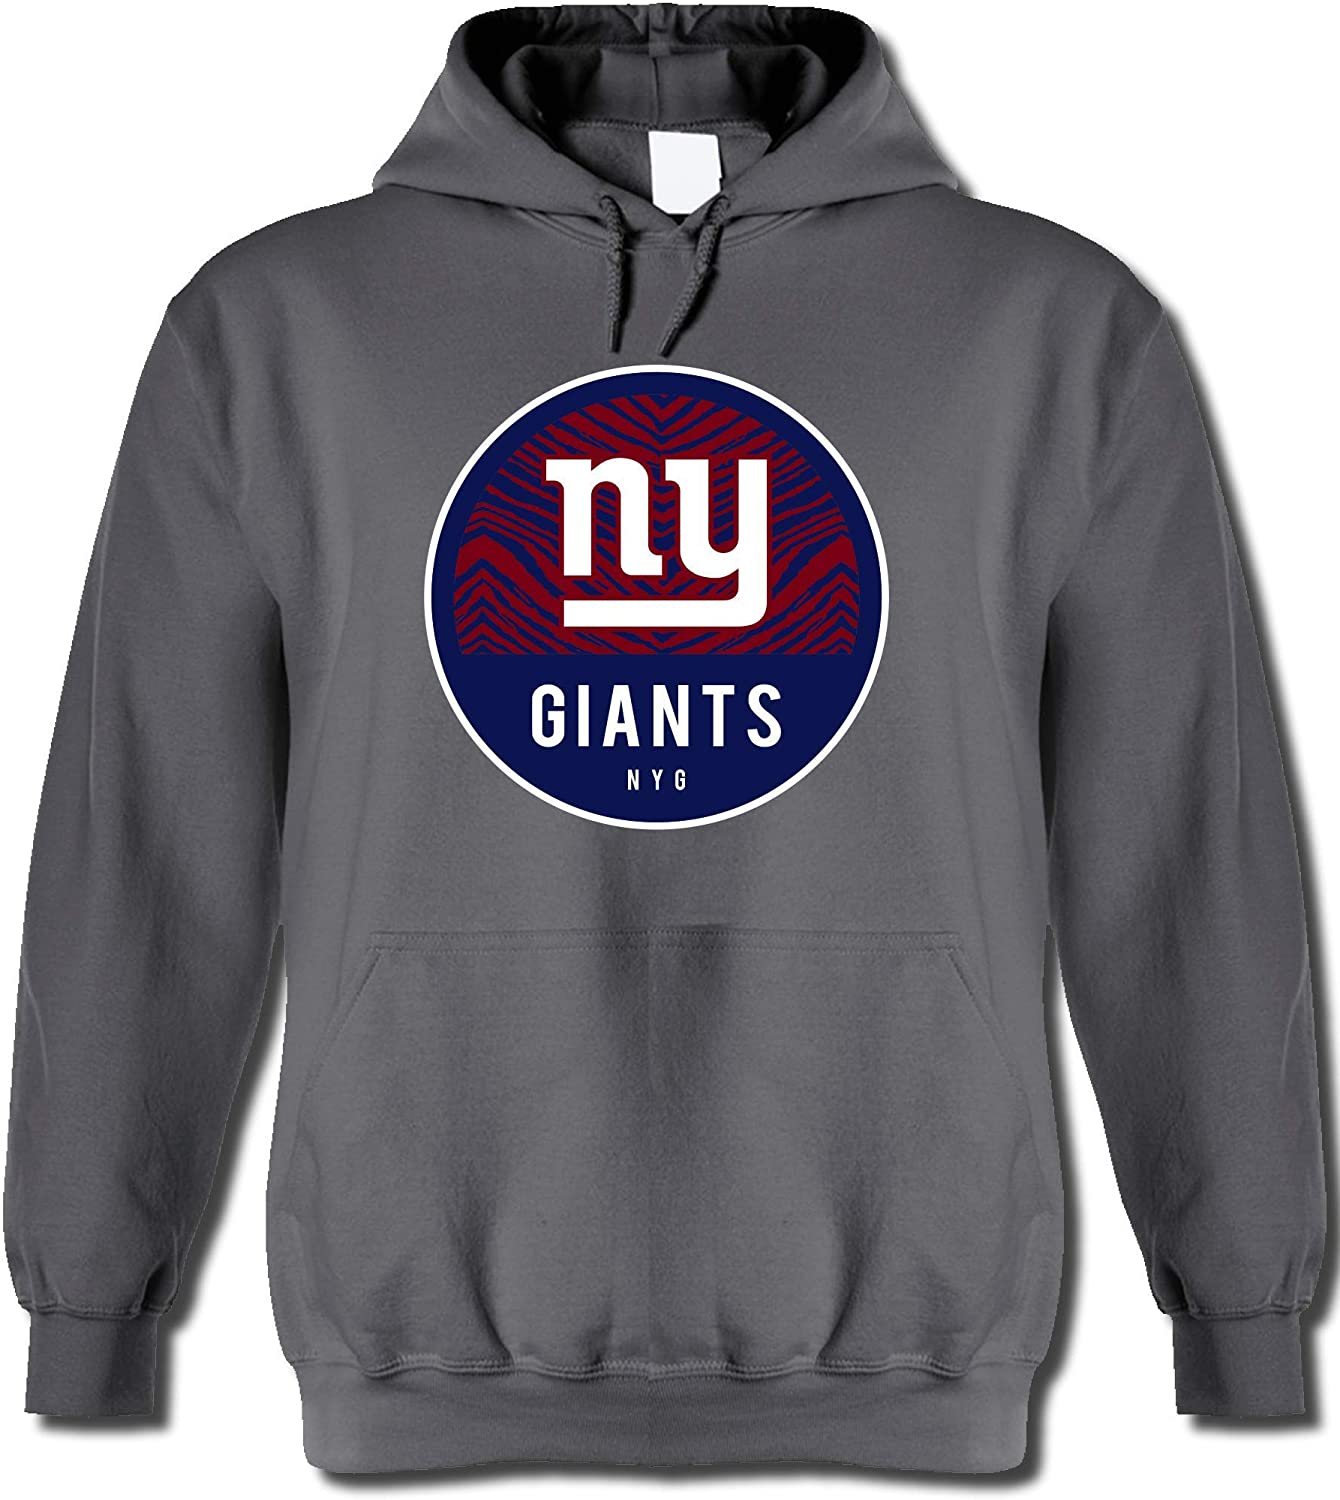 Zubaz Officially Licensed NFL Men's Team Graphic Gray Hoodie, Team Color